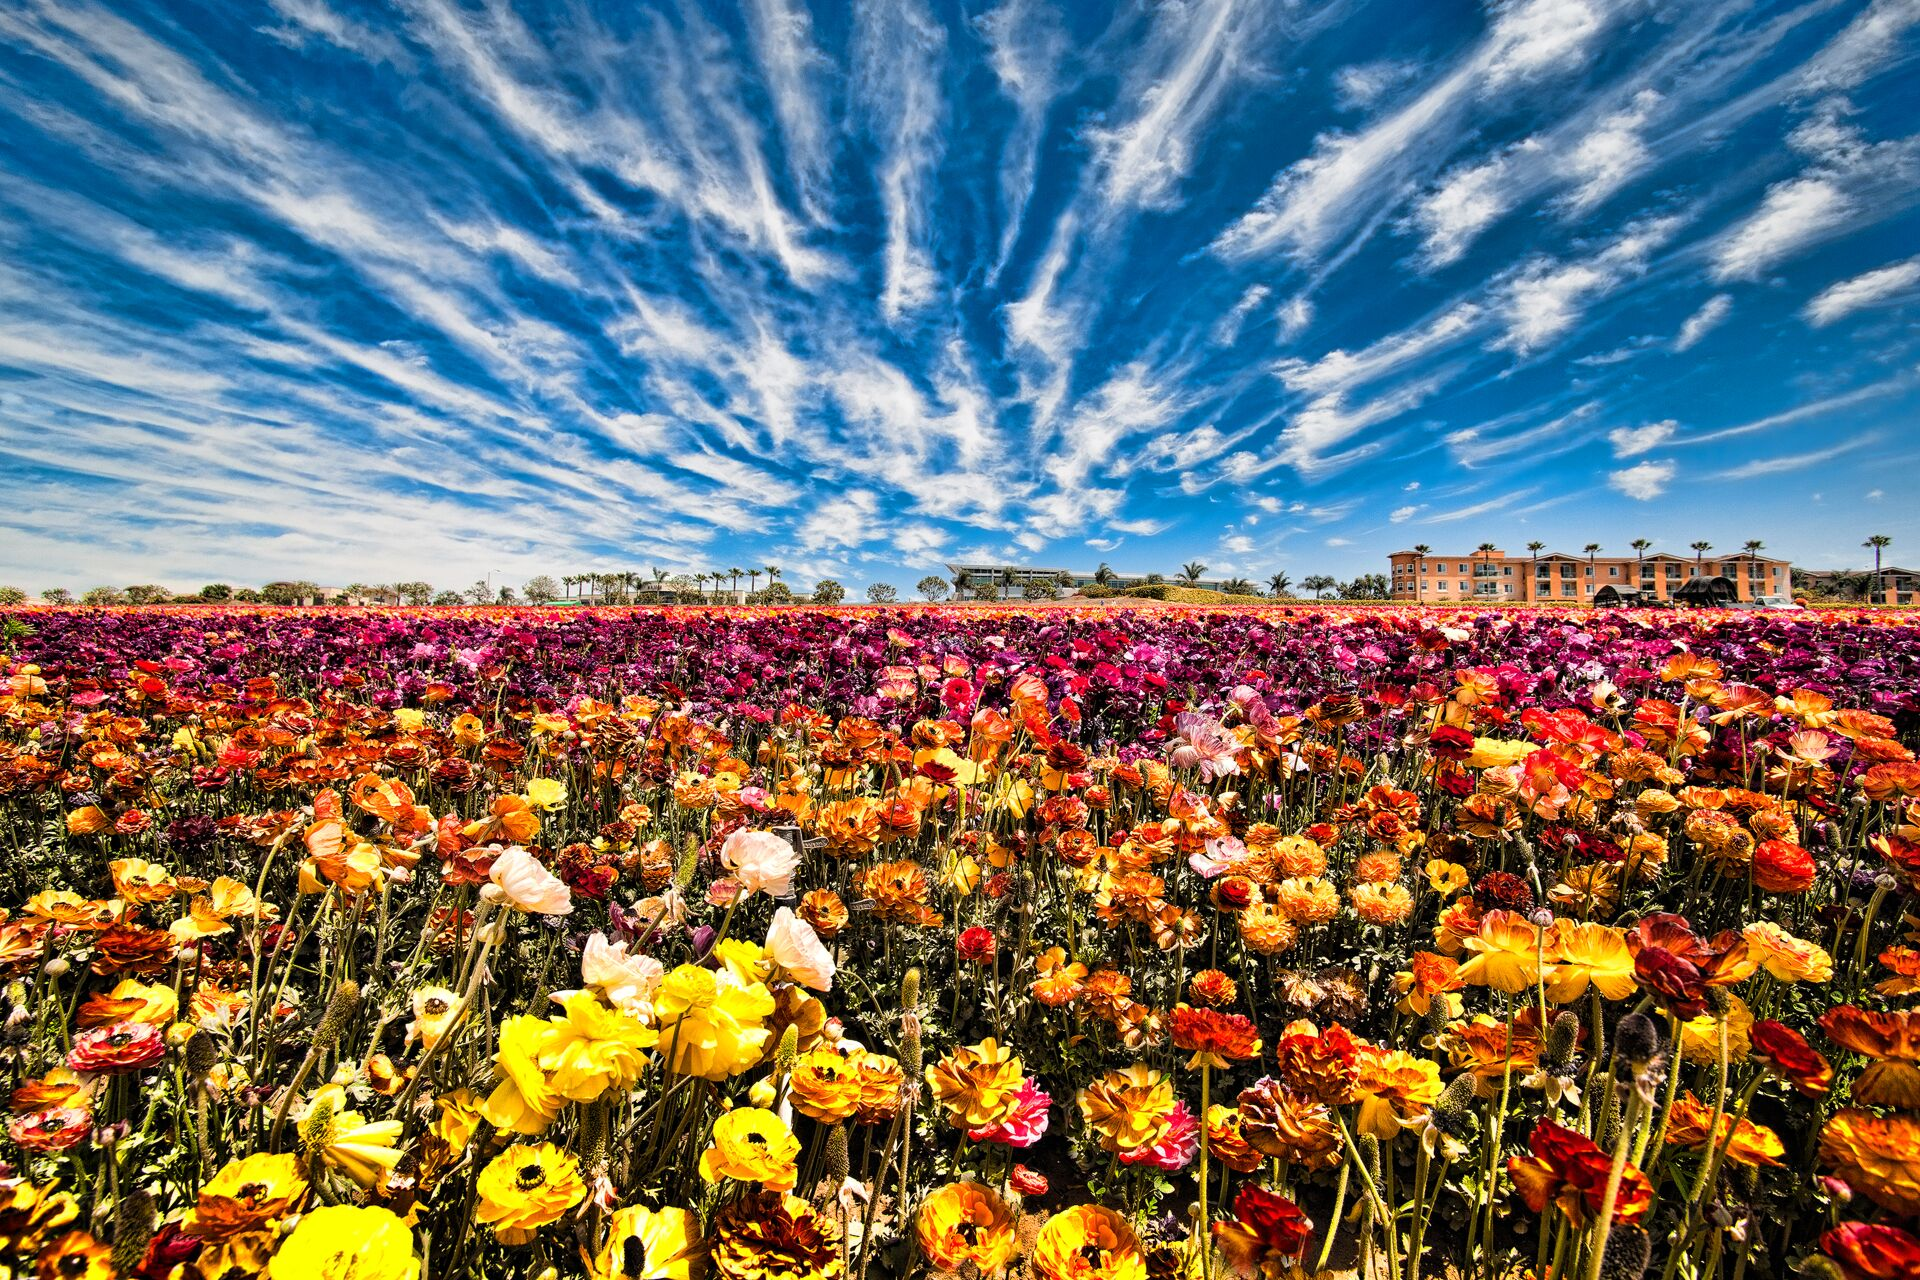 The Flower Fields - Extended week until May 16th: Main Image